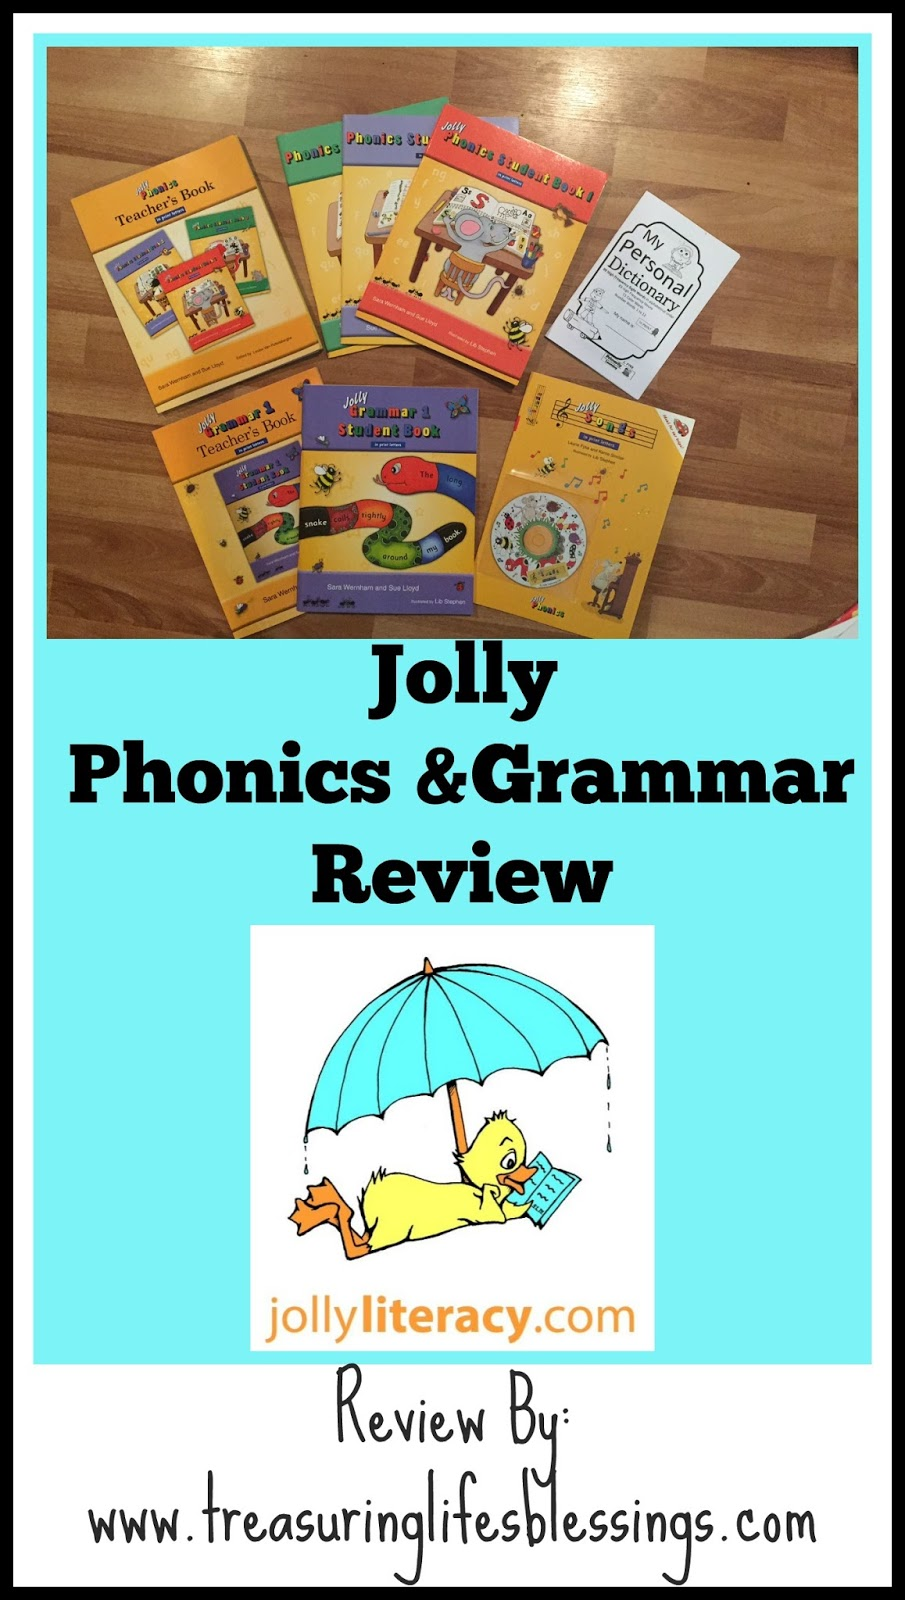 Workbooks jolly phonics workbook 1 free download : Jolly Phonics- Review - Treasuring Life's Blessings